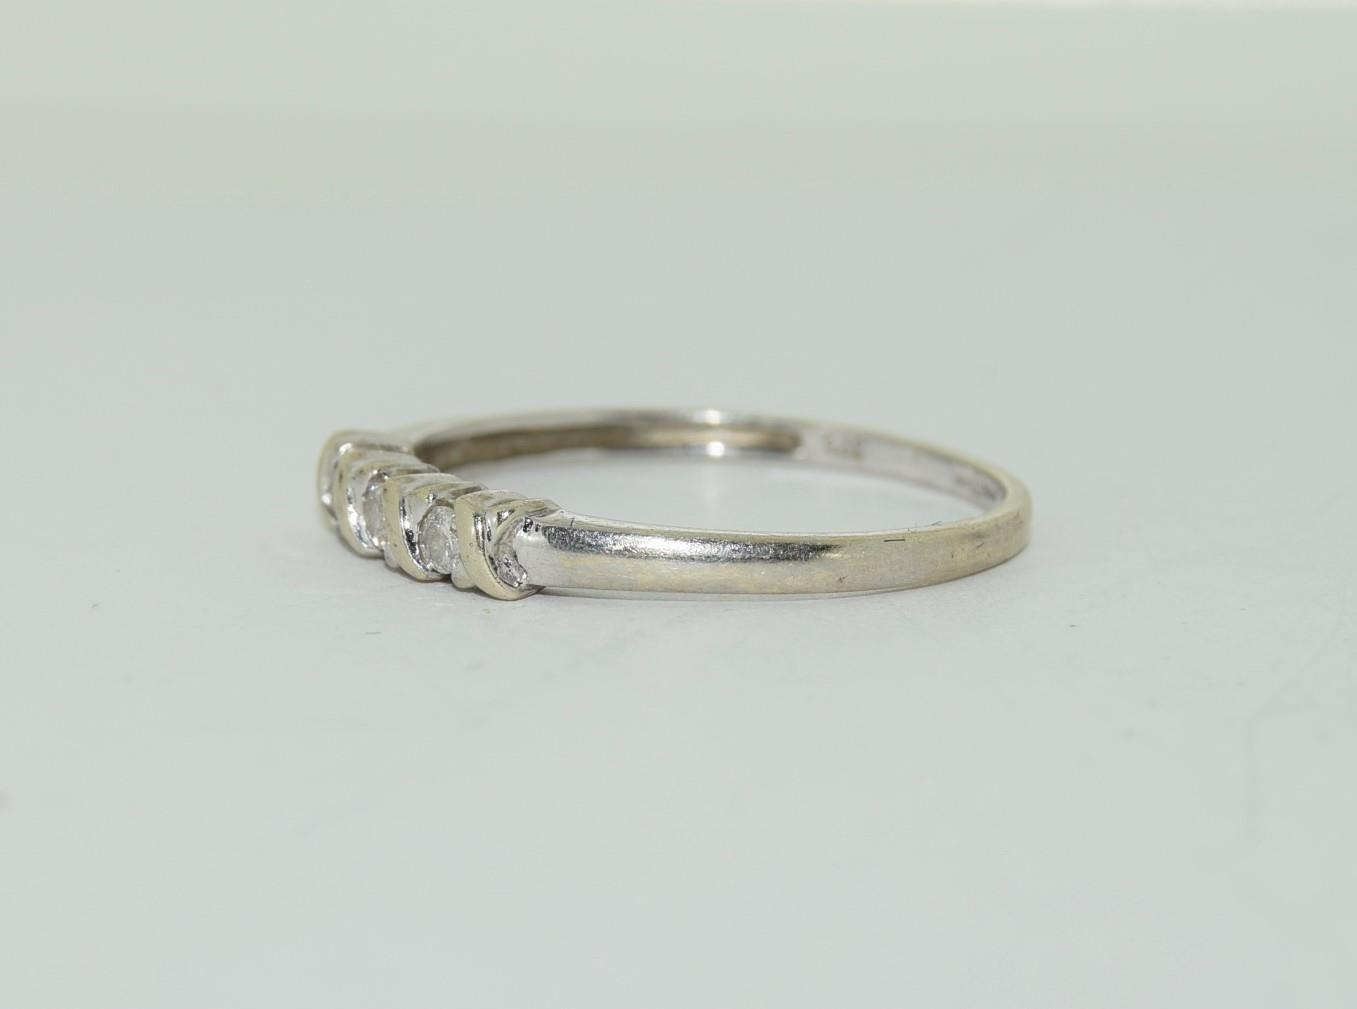 9ct white gold diamond 3 stone ring h/m for 0.1ct size Q - Image 8 of 12